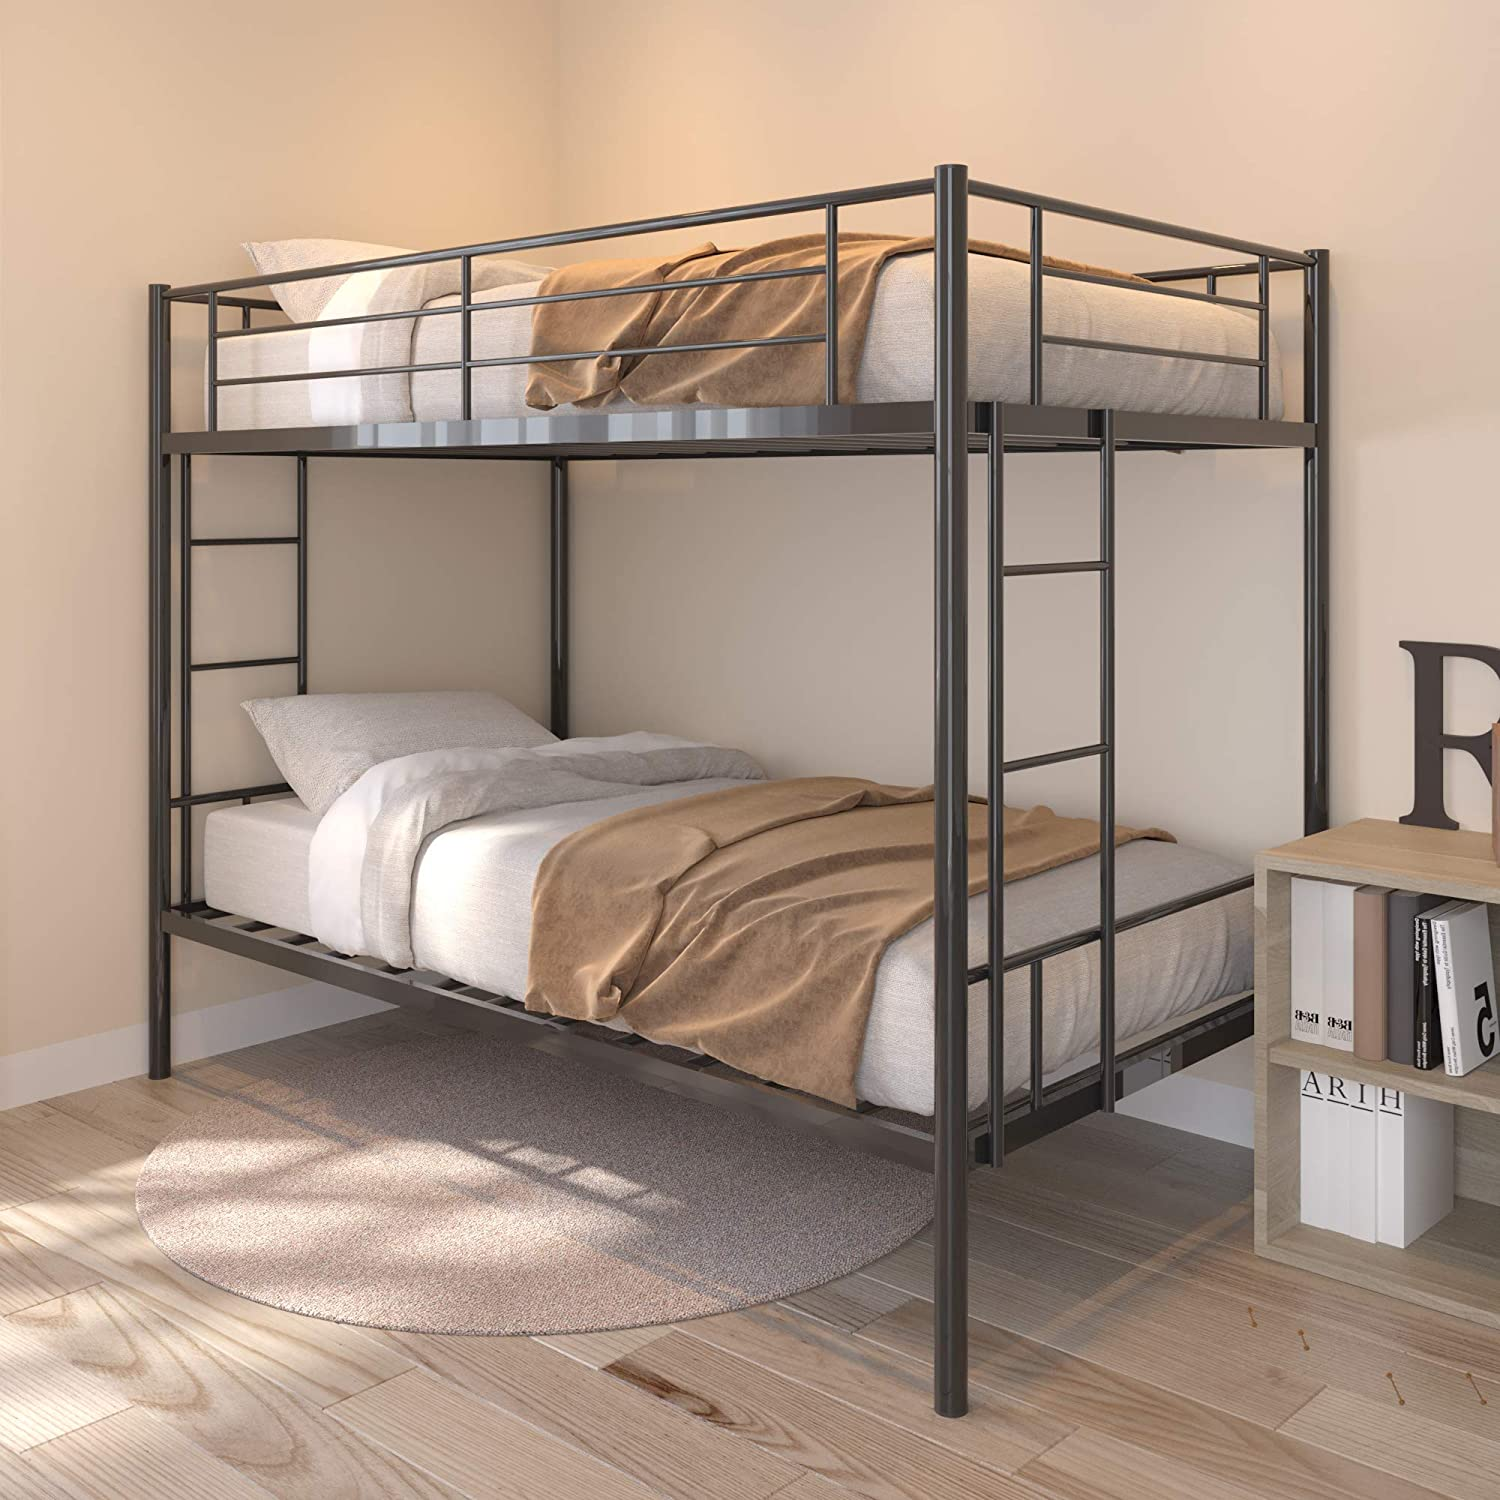 Twin Over Challenge the lowest price of Japan ☆ Metal Bunk Beds Heavy New product type with S Frame Steel Bed Duty